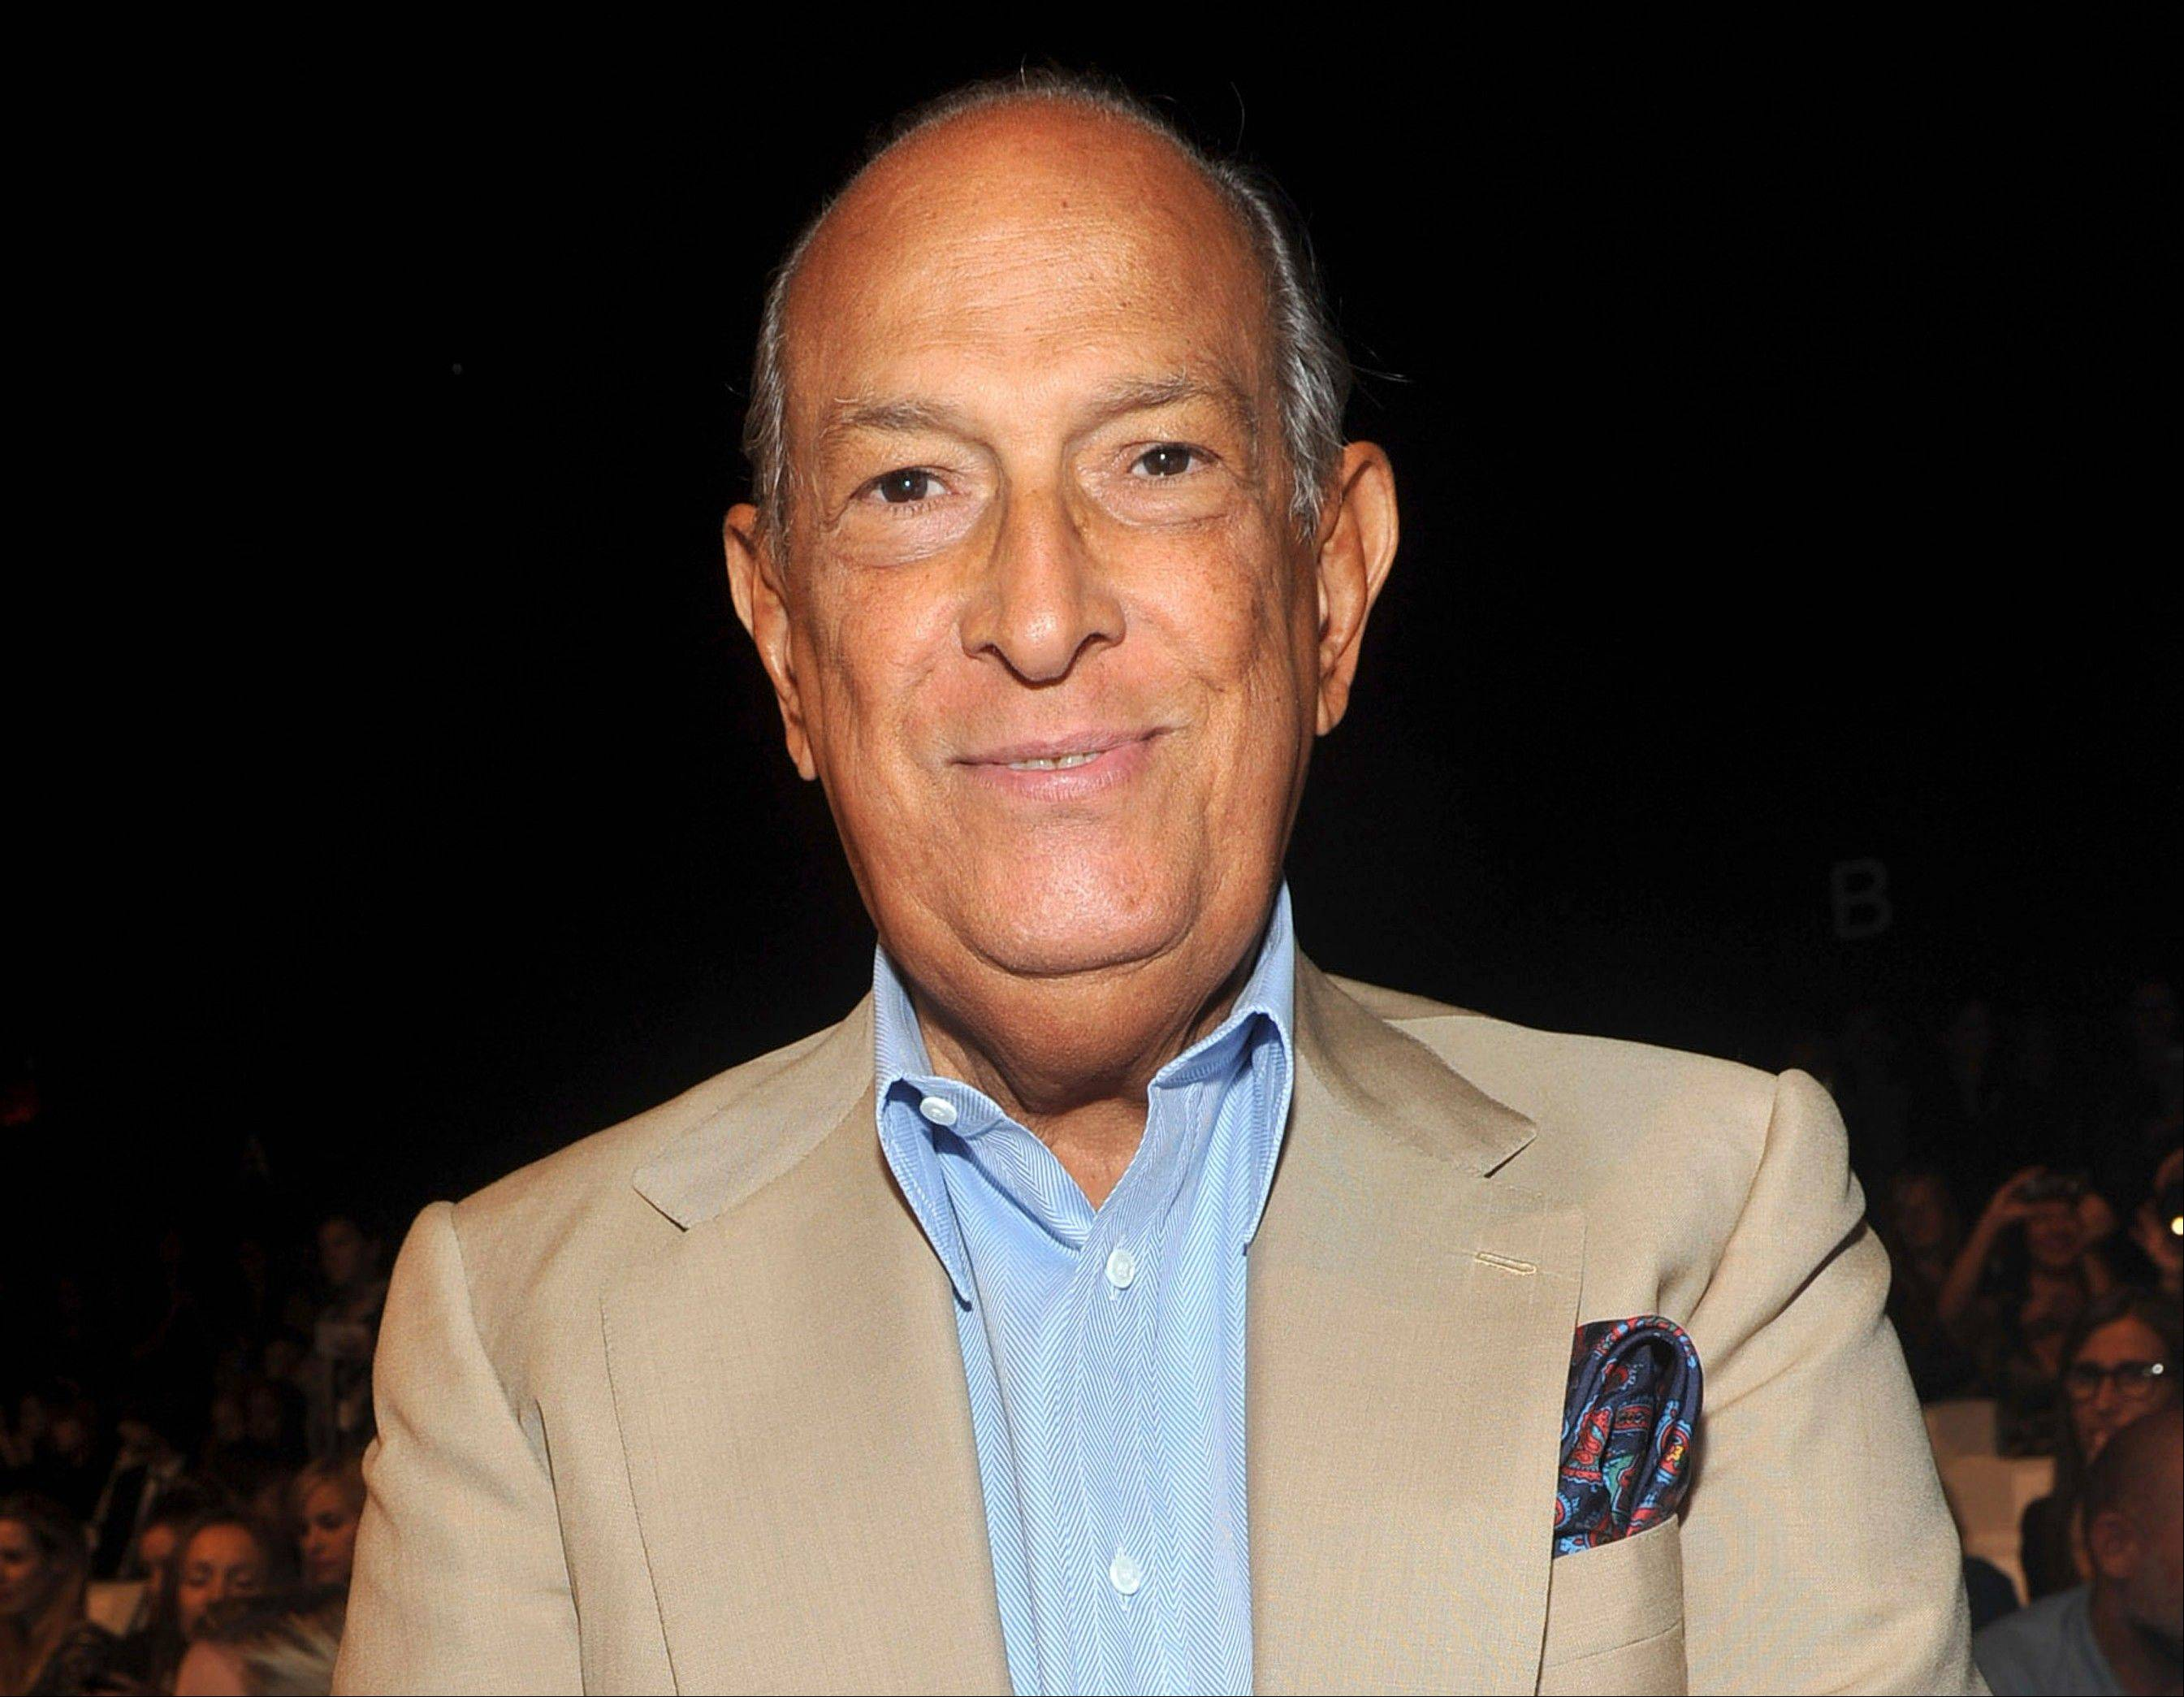 Designer Oscar de la Renta received the 2012 Couture Council Award by The Fashion Institute of Technology in New York.